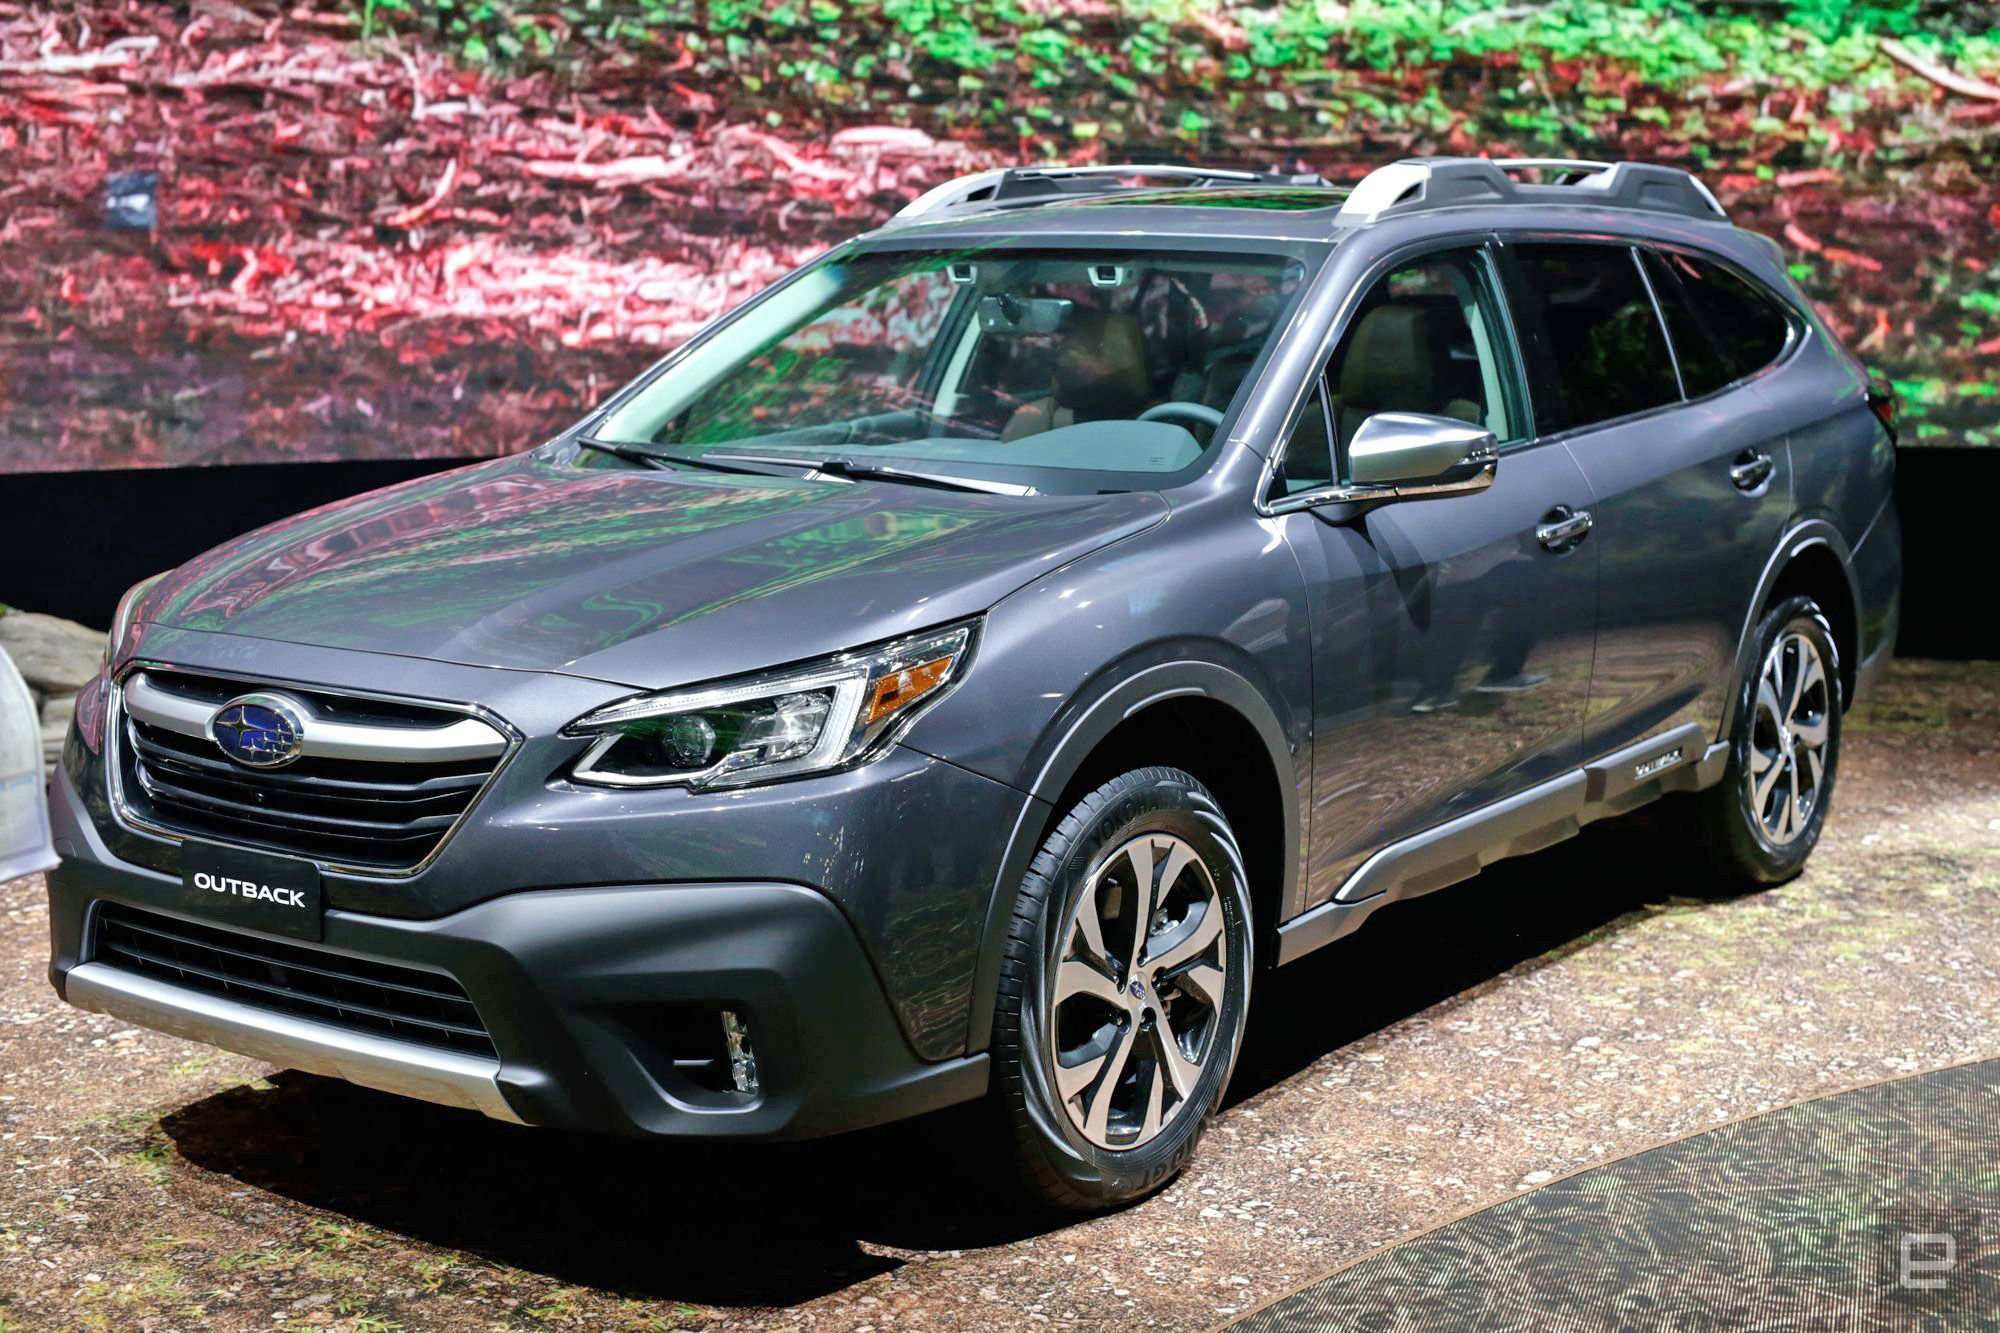 54 All New Subaru Outback 2020 Uk Price And Release Date